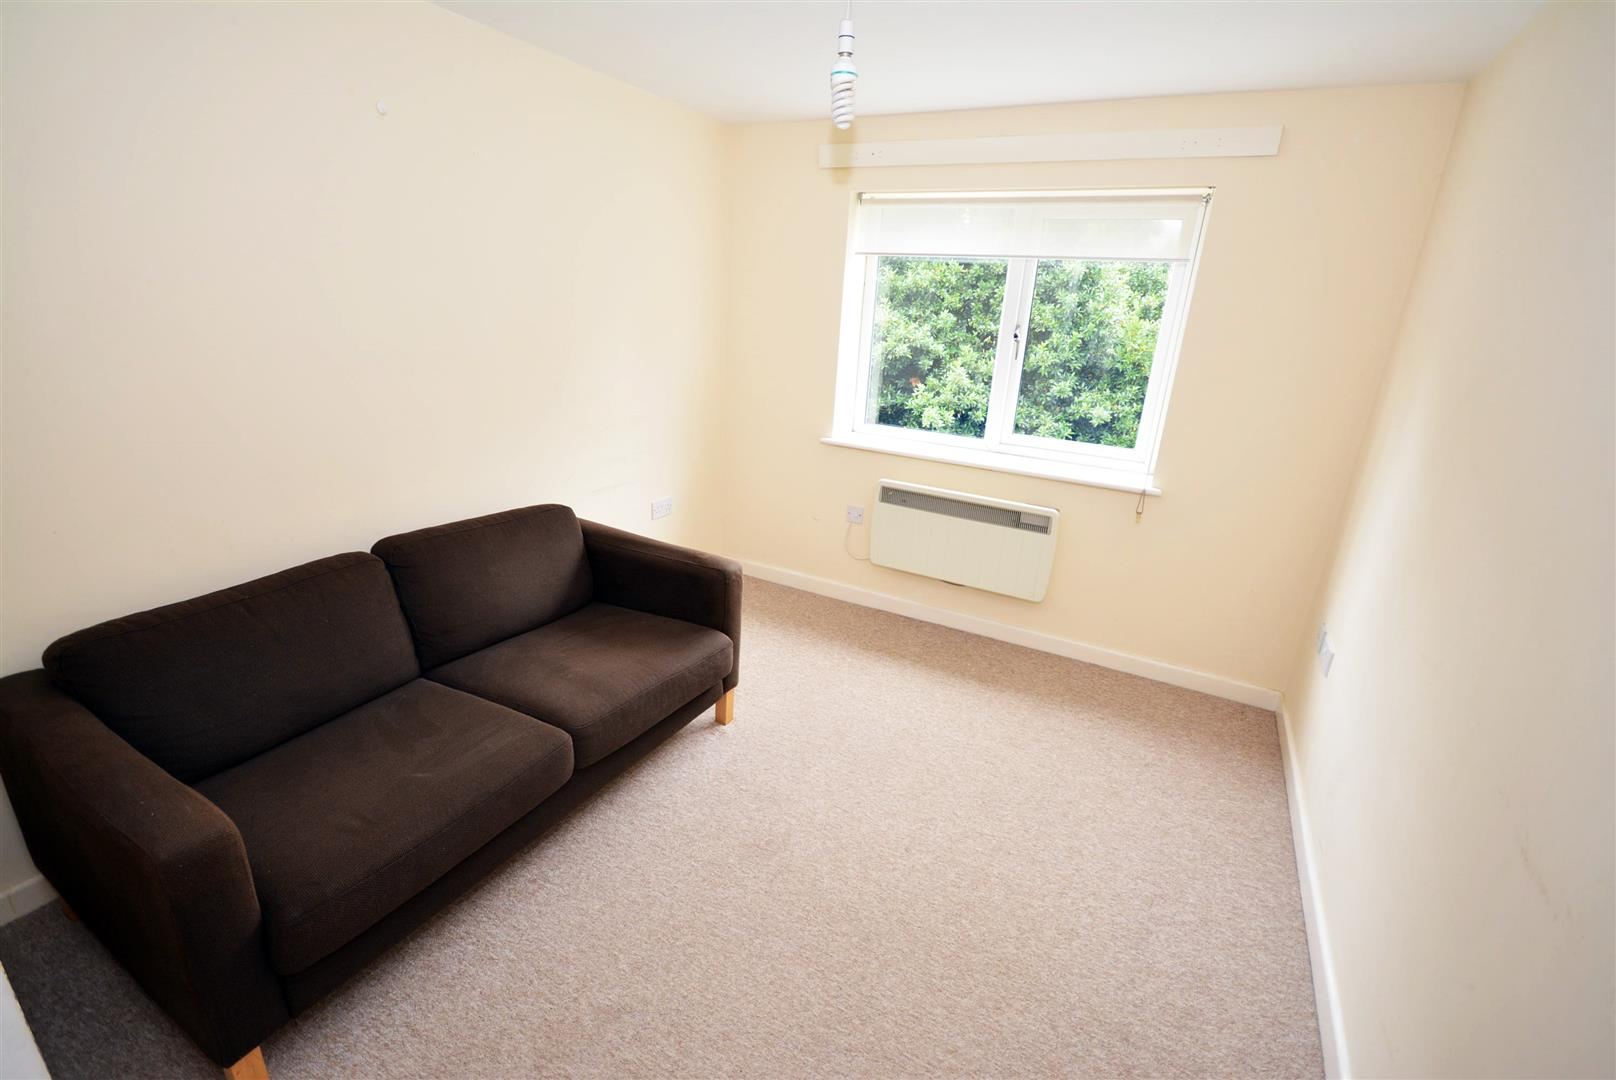 2 bed flat to rent in Bedford Street, Cardiff, CF24